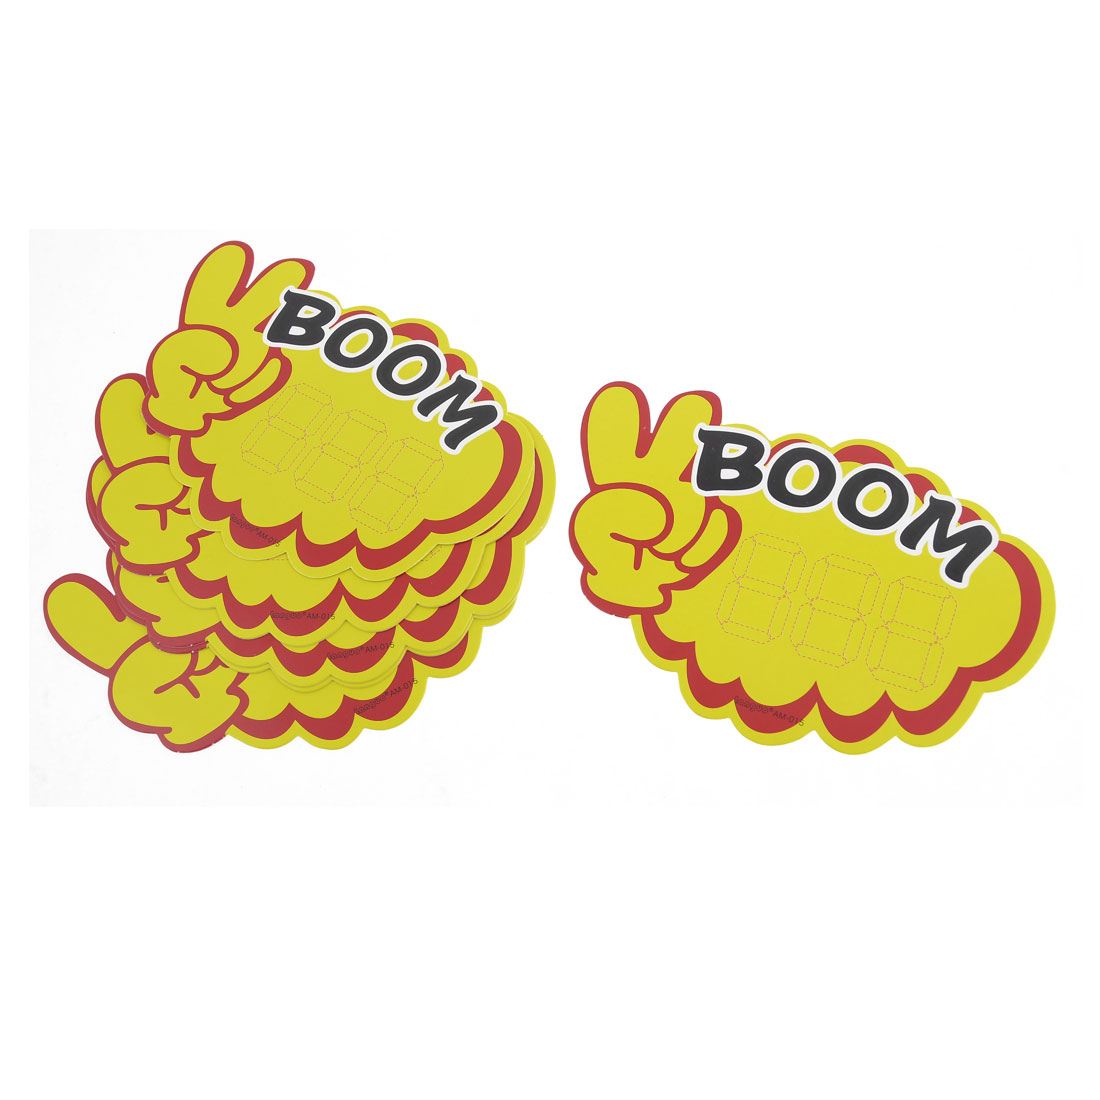 10 Pcs Stores Boom Pattern Victory Gesture Pop Price Tags Sale Cards Yellow Red